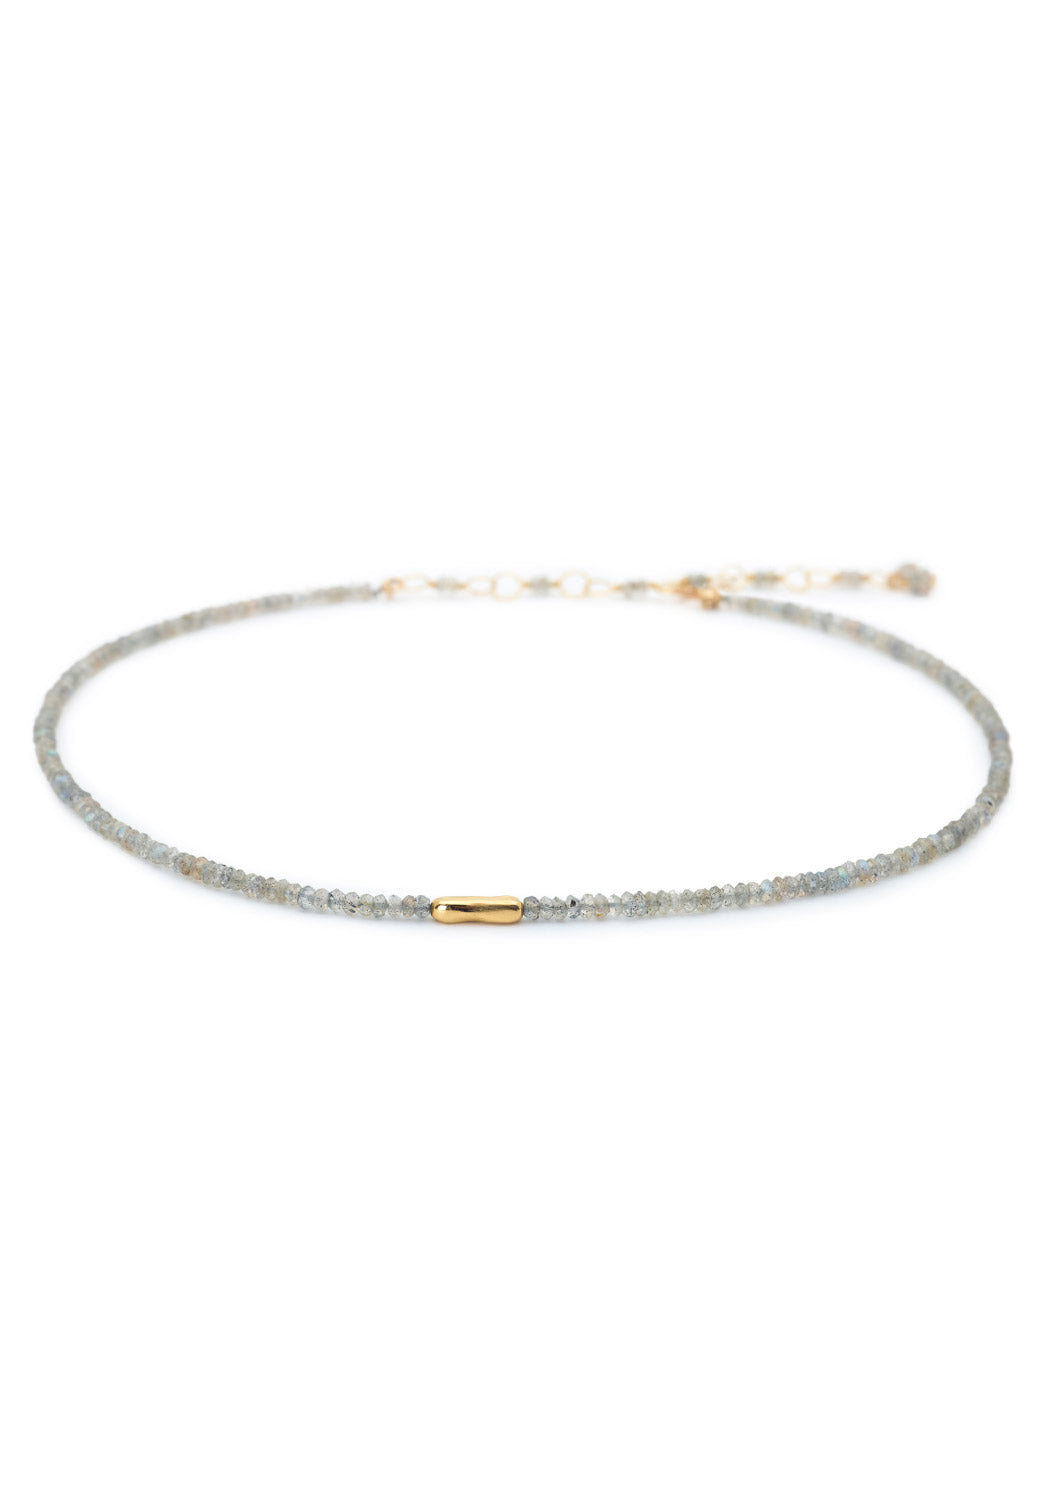 Anne Sportun Labradorite Bead Choker with Gold Accent